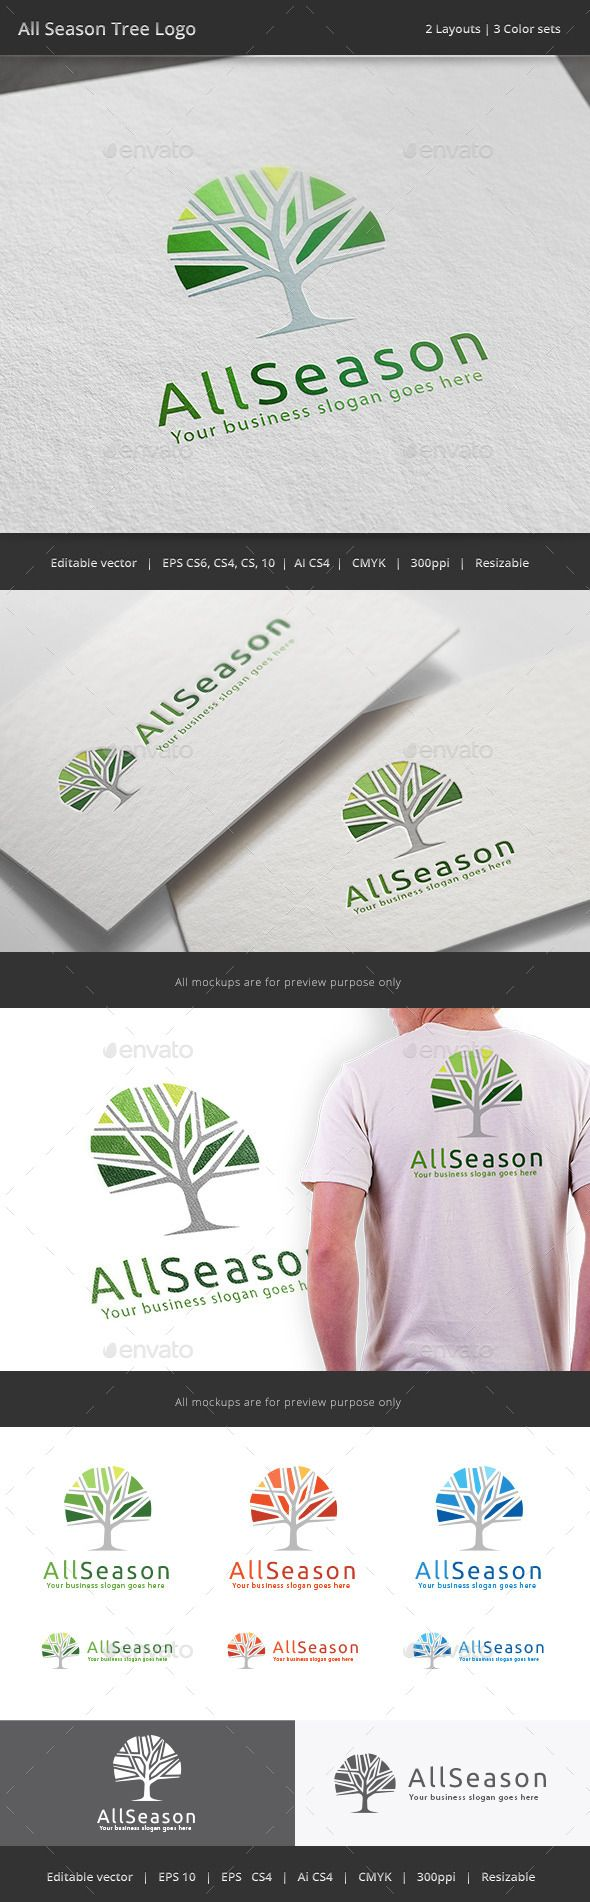 All Season Tree Logo - Nature Logo Templates